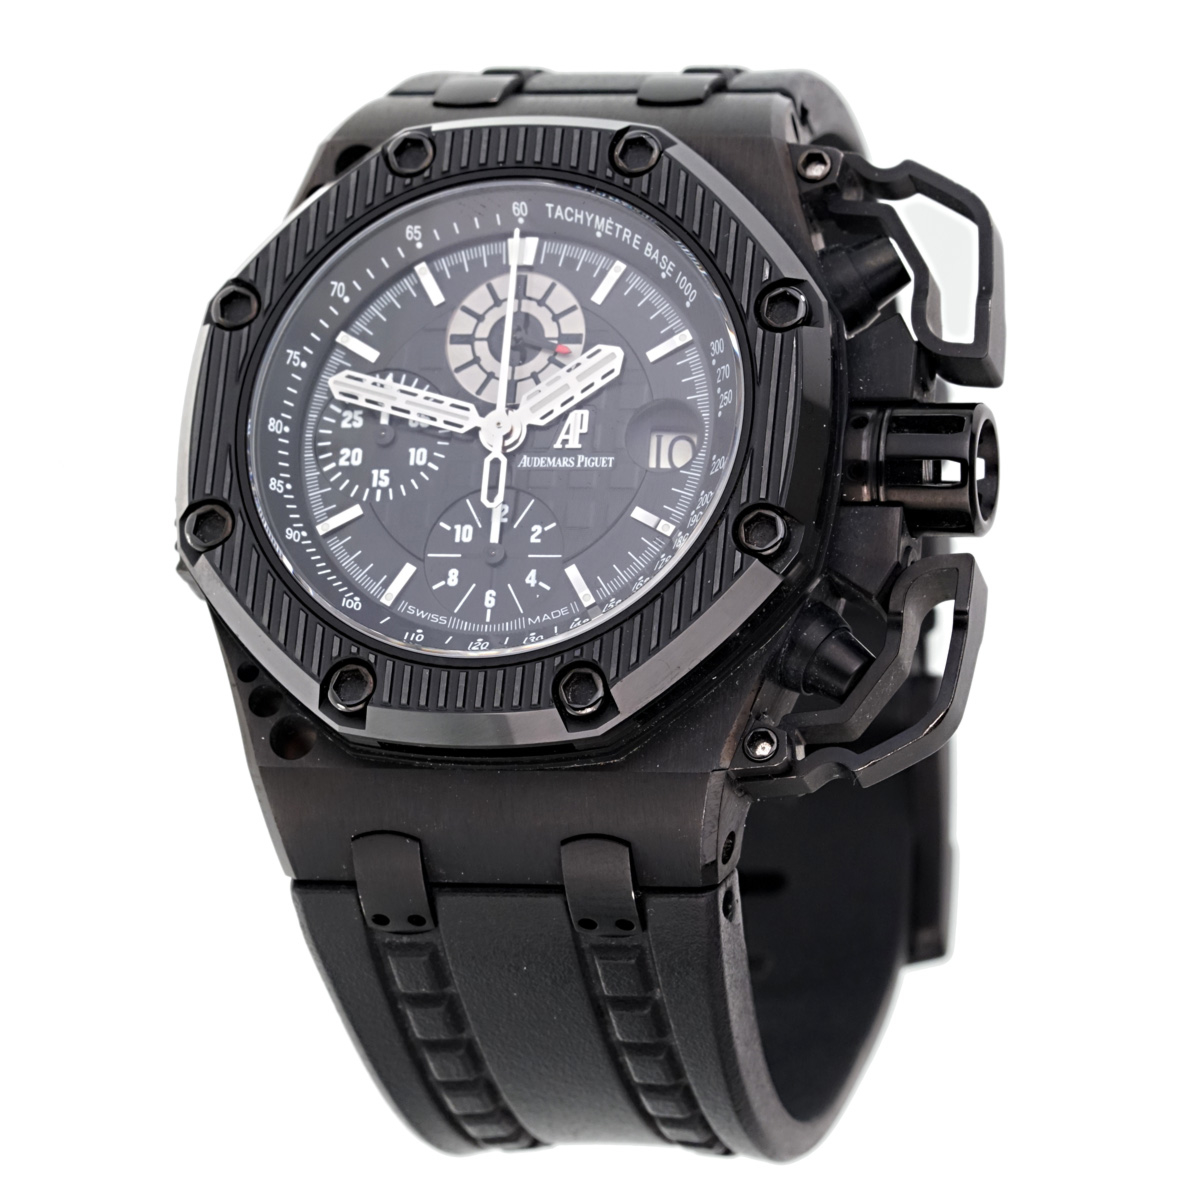 Audemars Piguet Survivor Black PVD Watch 2616510.00.A002CA.01 - Audemars Piguet Jewelry